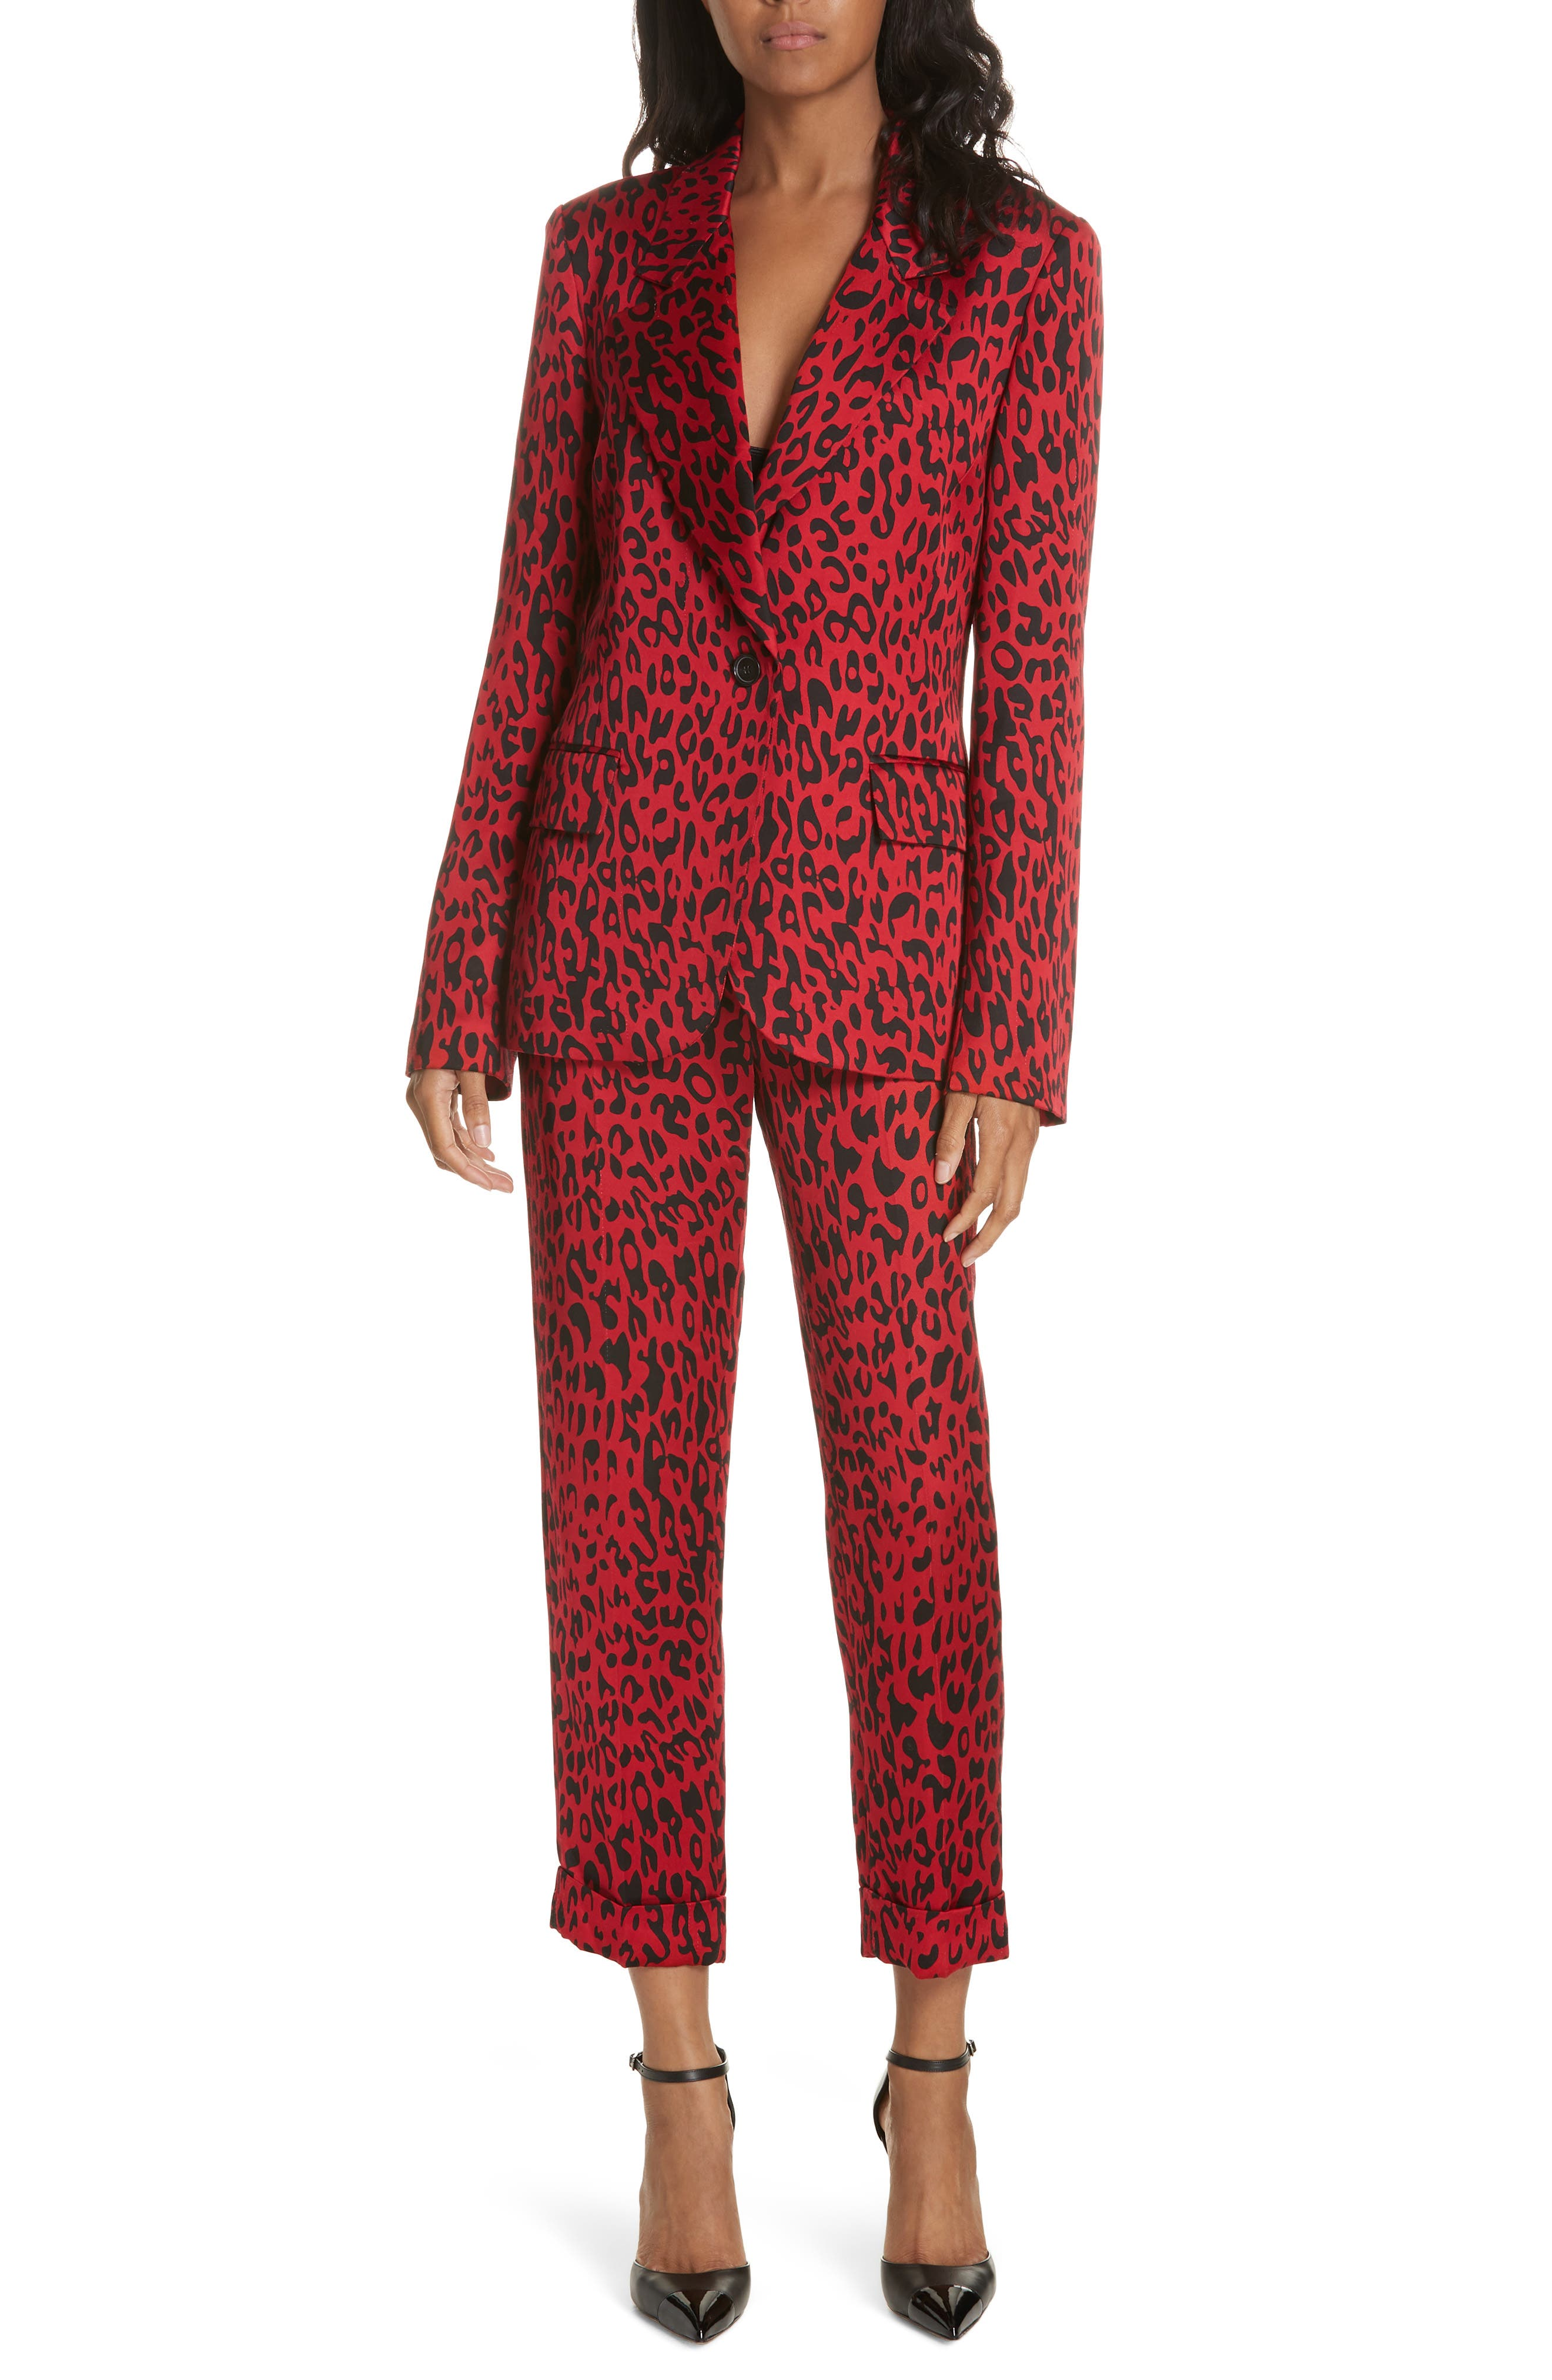 Leopard Print Trousers,                             Alternate thumbnail 7, color,                             RED LEOPARD